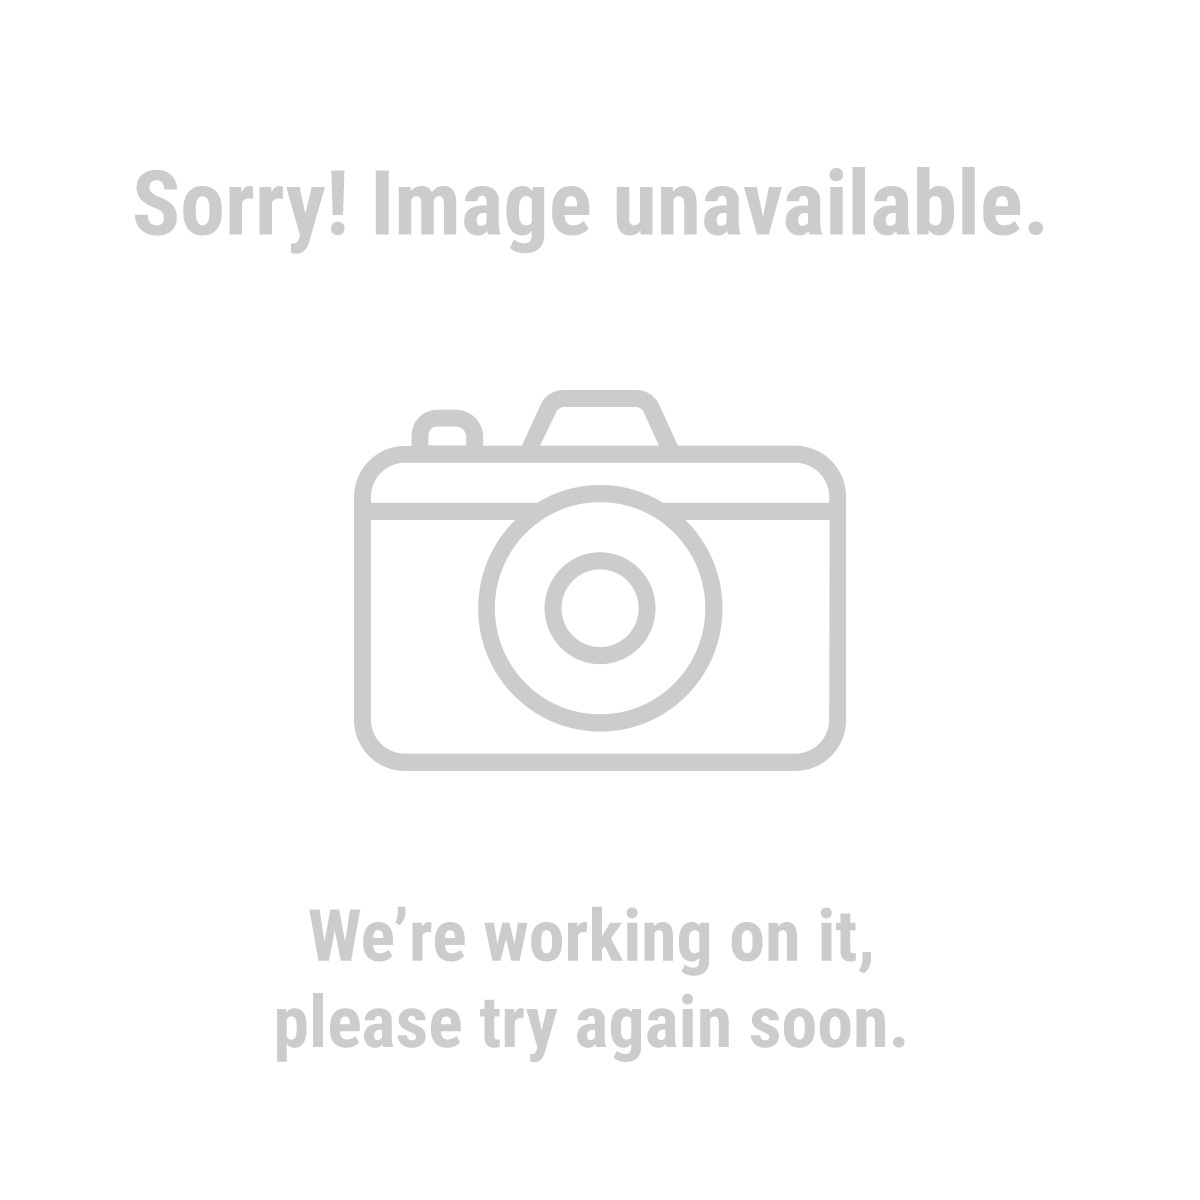 "Bunker Hill Security 67706 15 ft. x 3/8"" Braided Steel Security Cable"